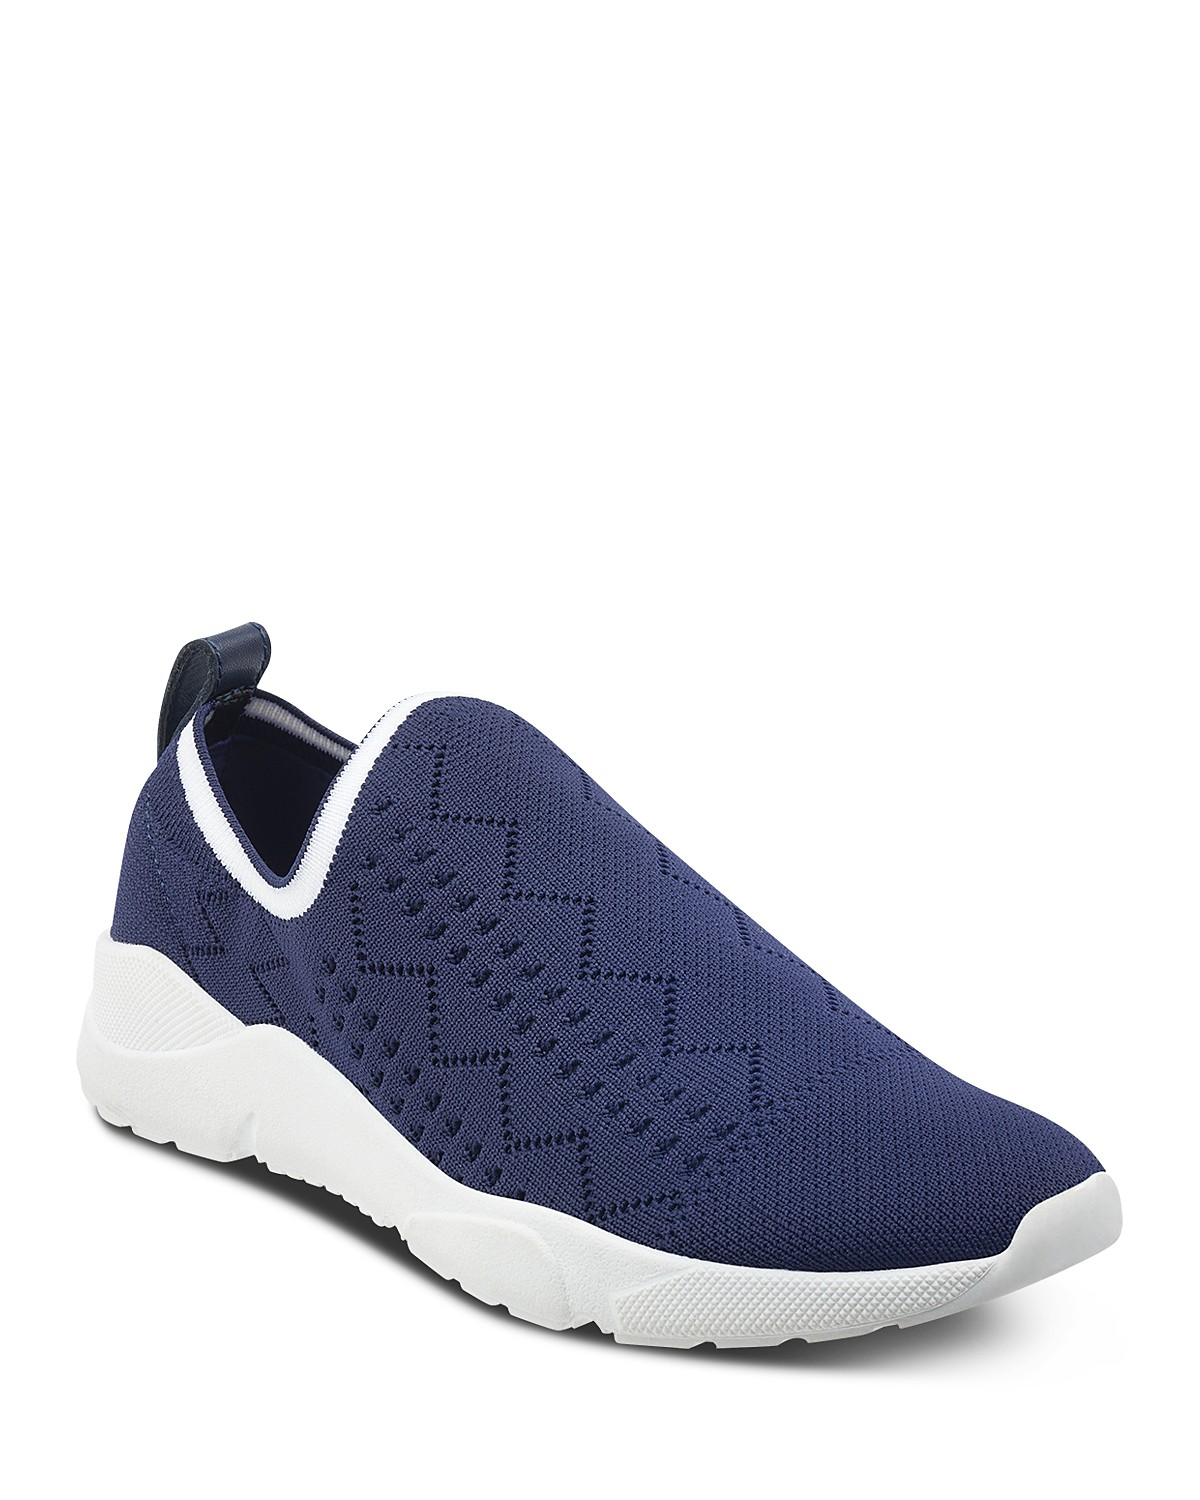 MARC FISHER Women's Karri Knit Slip-On Sneakers EActX6y